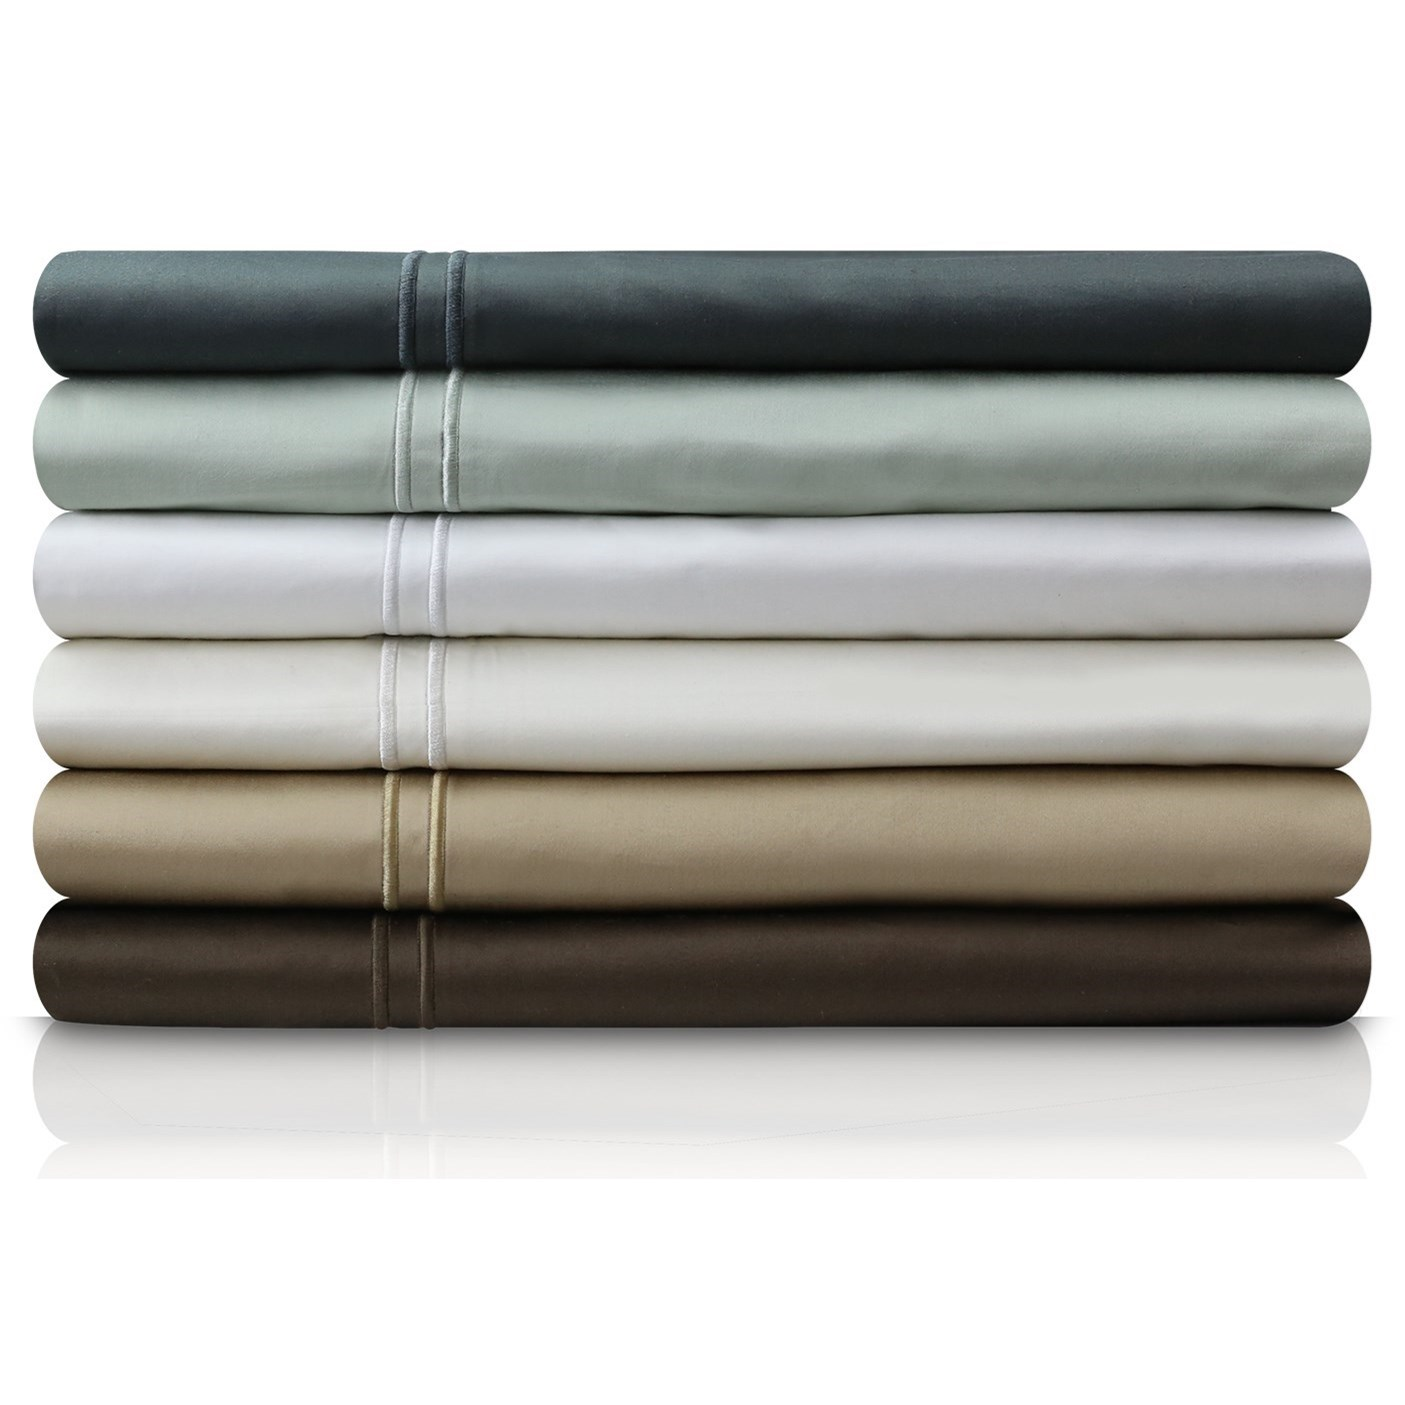 Malouf Egyptian Cotton Queen 600 TC Egyptian Cotton Pillowcases  - Item Number: MA06QQSLPC